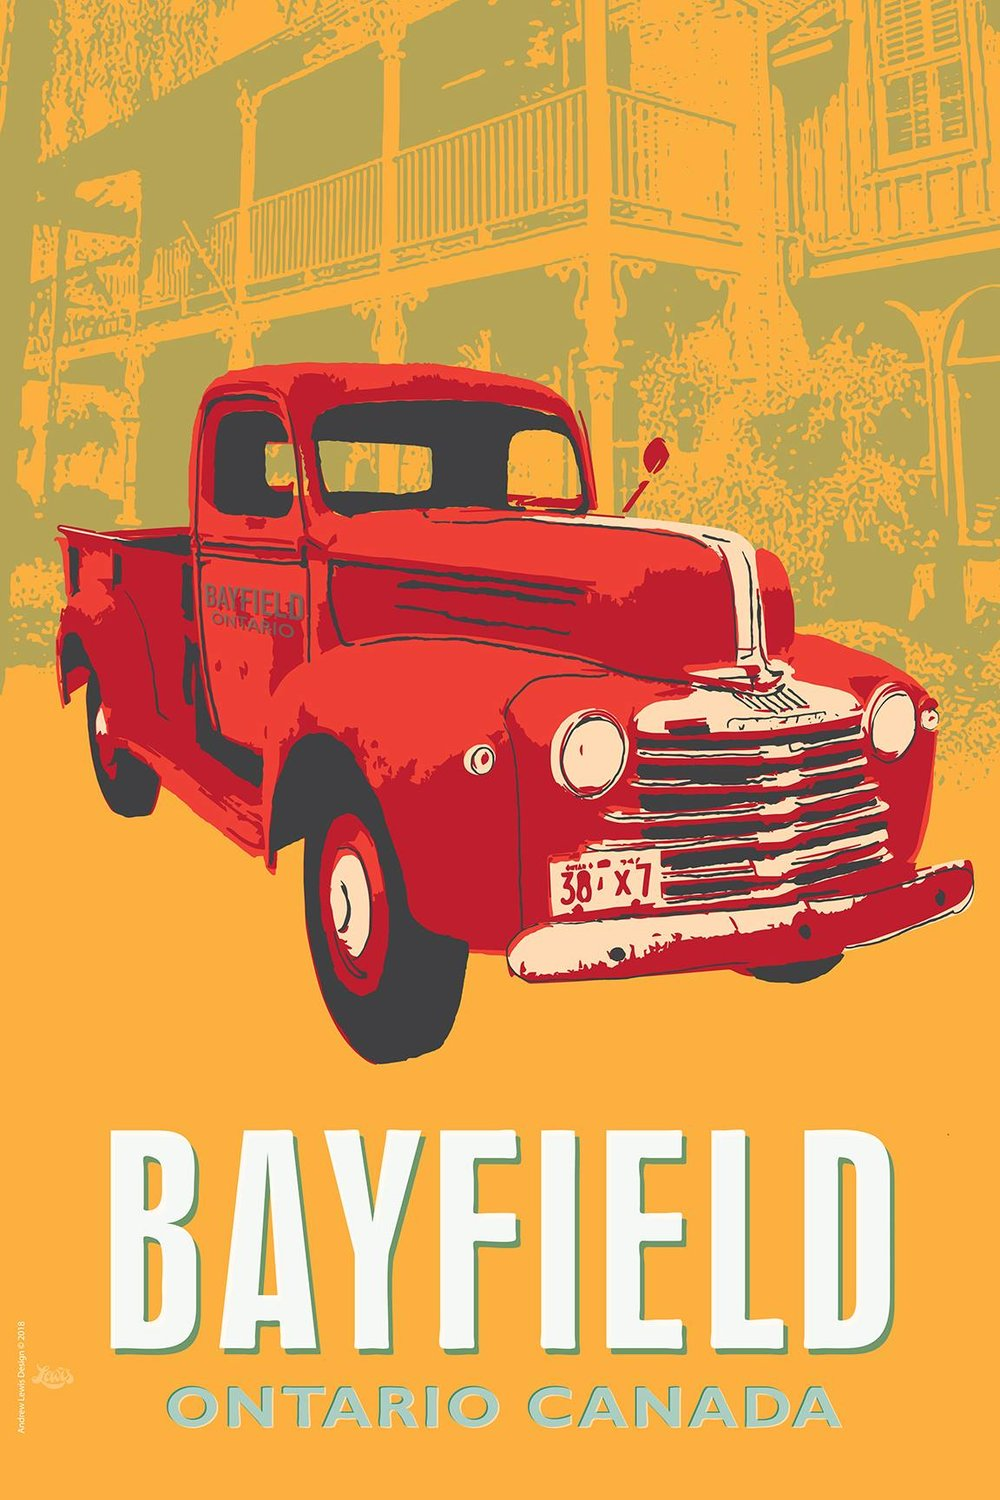 Truck Poster: Bayfield, Ontario, Canada